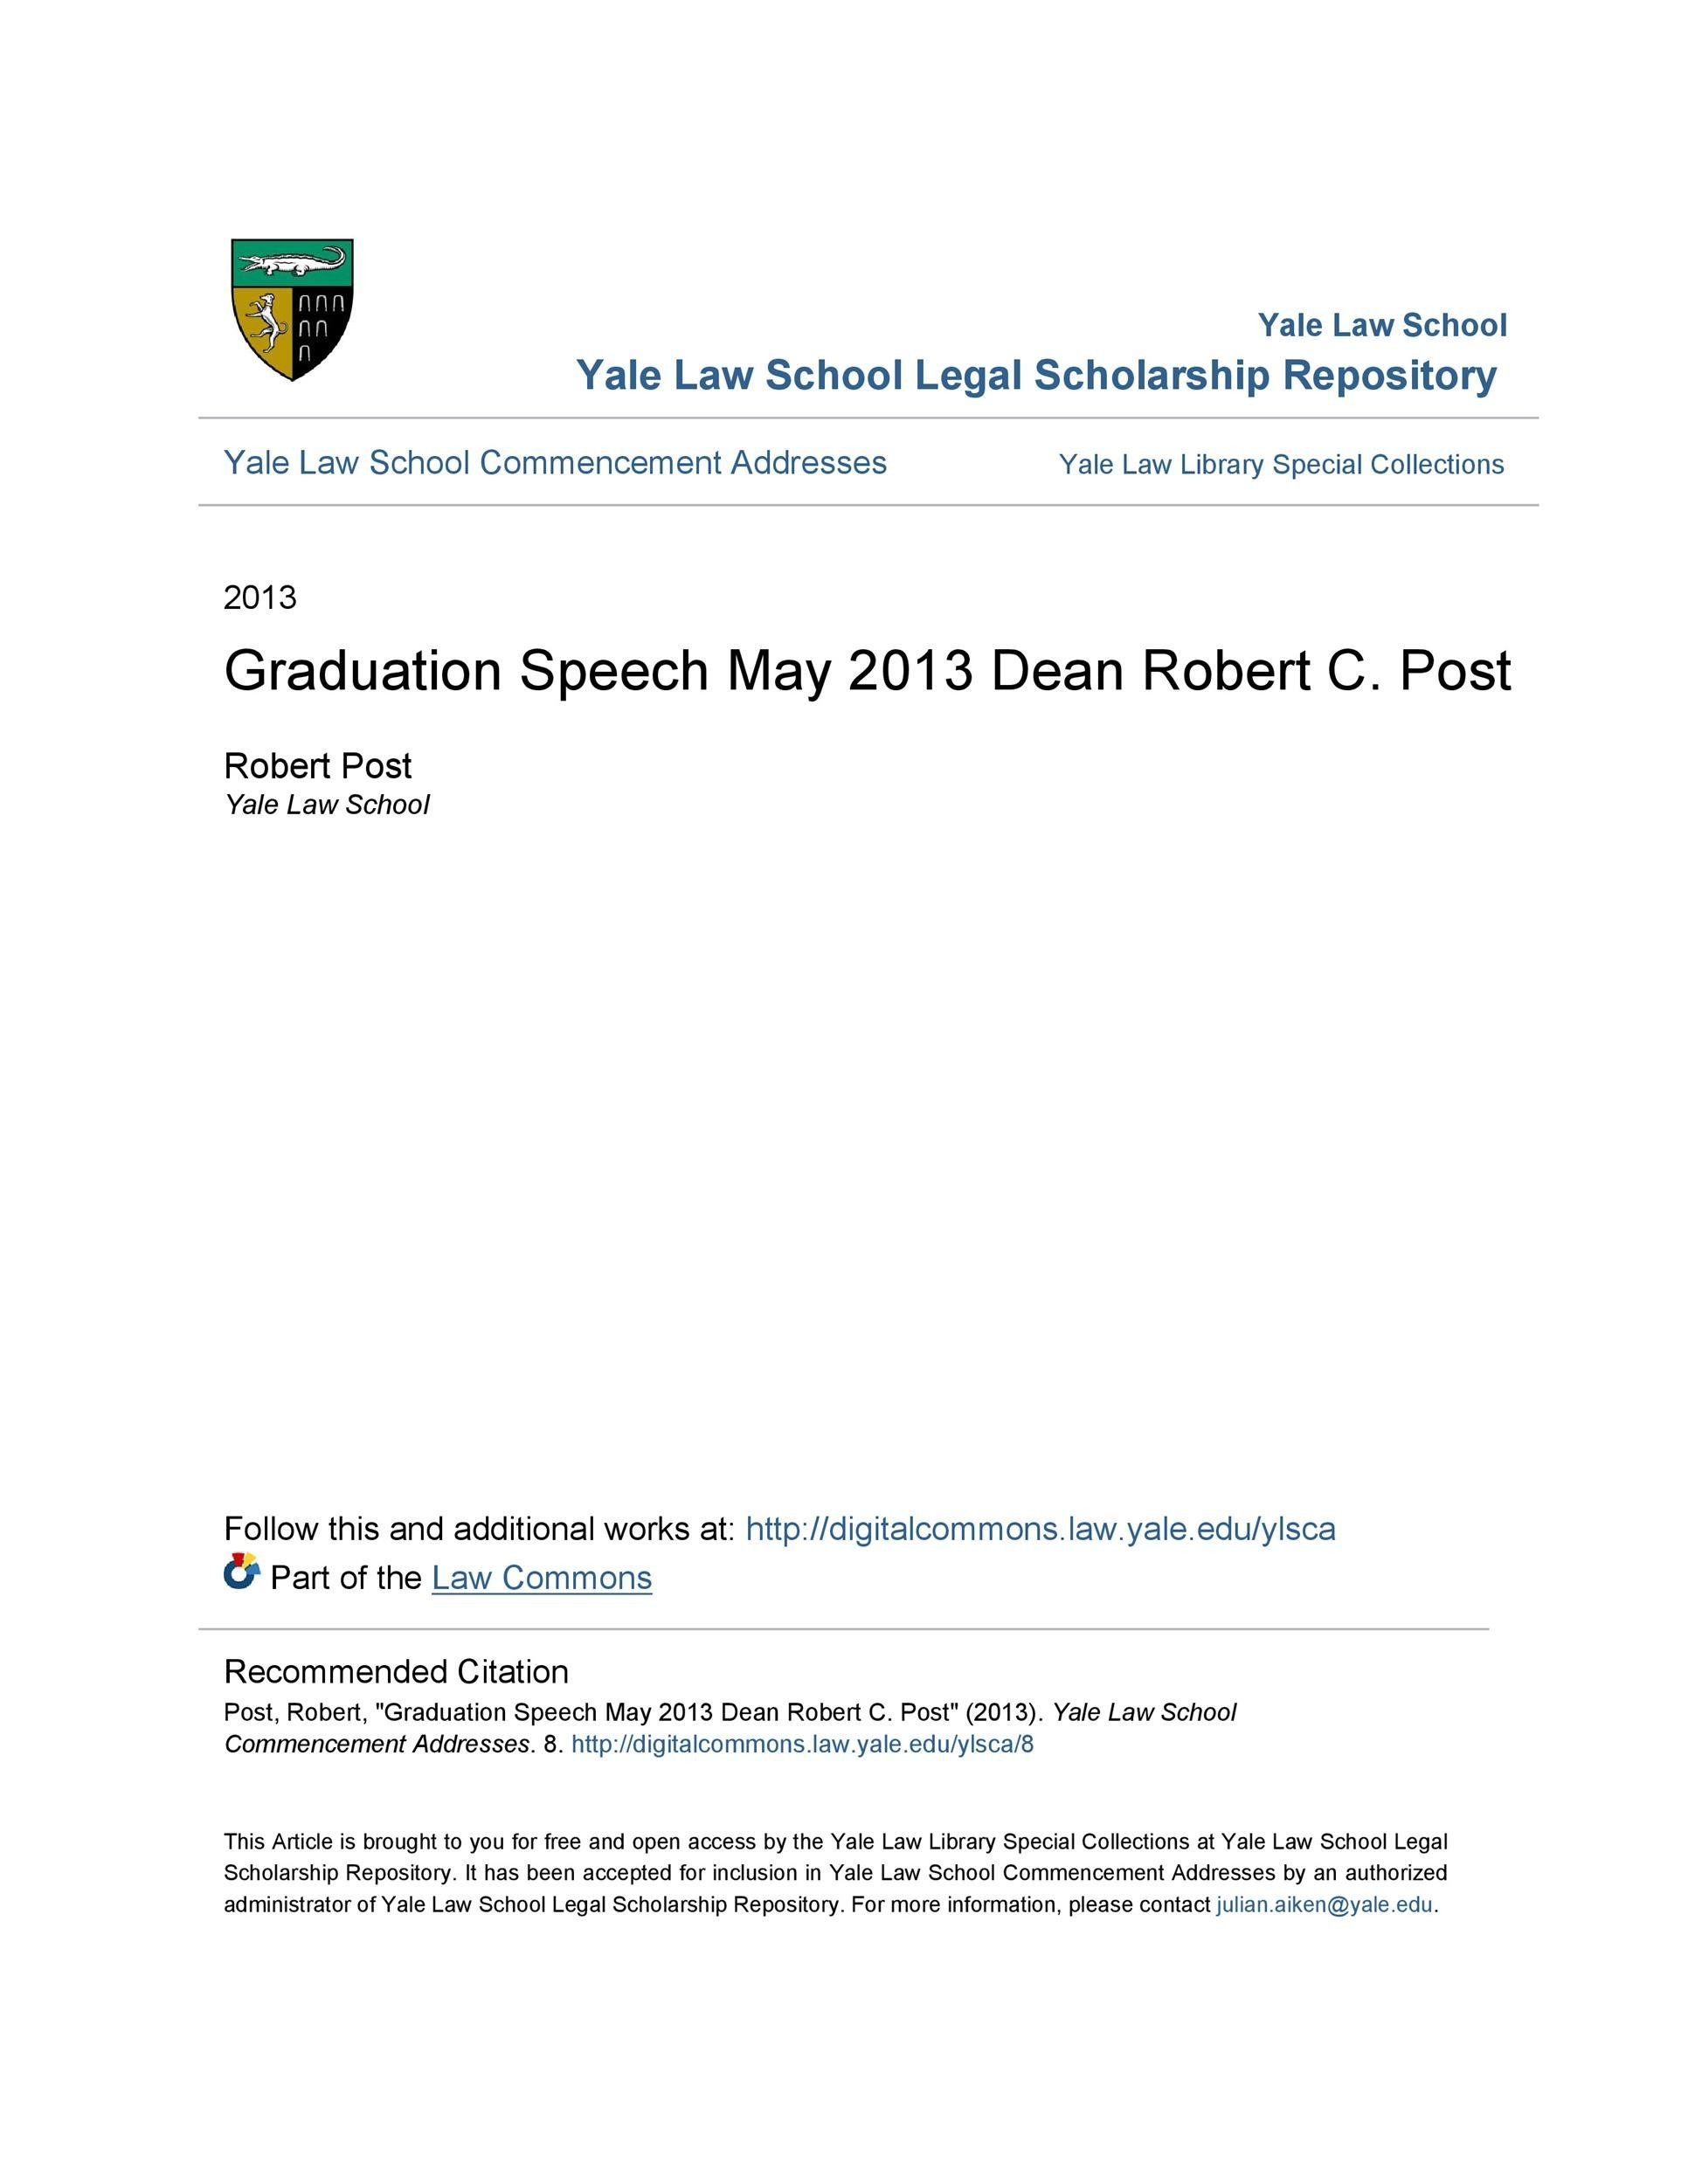 Free graduation speech example 13